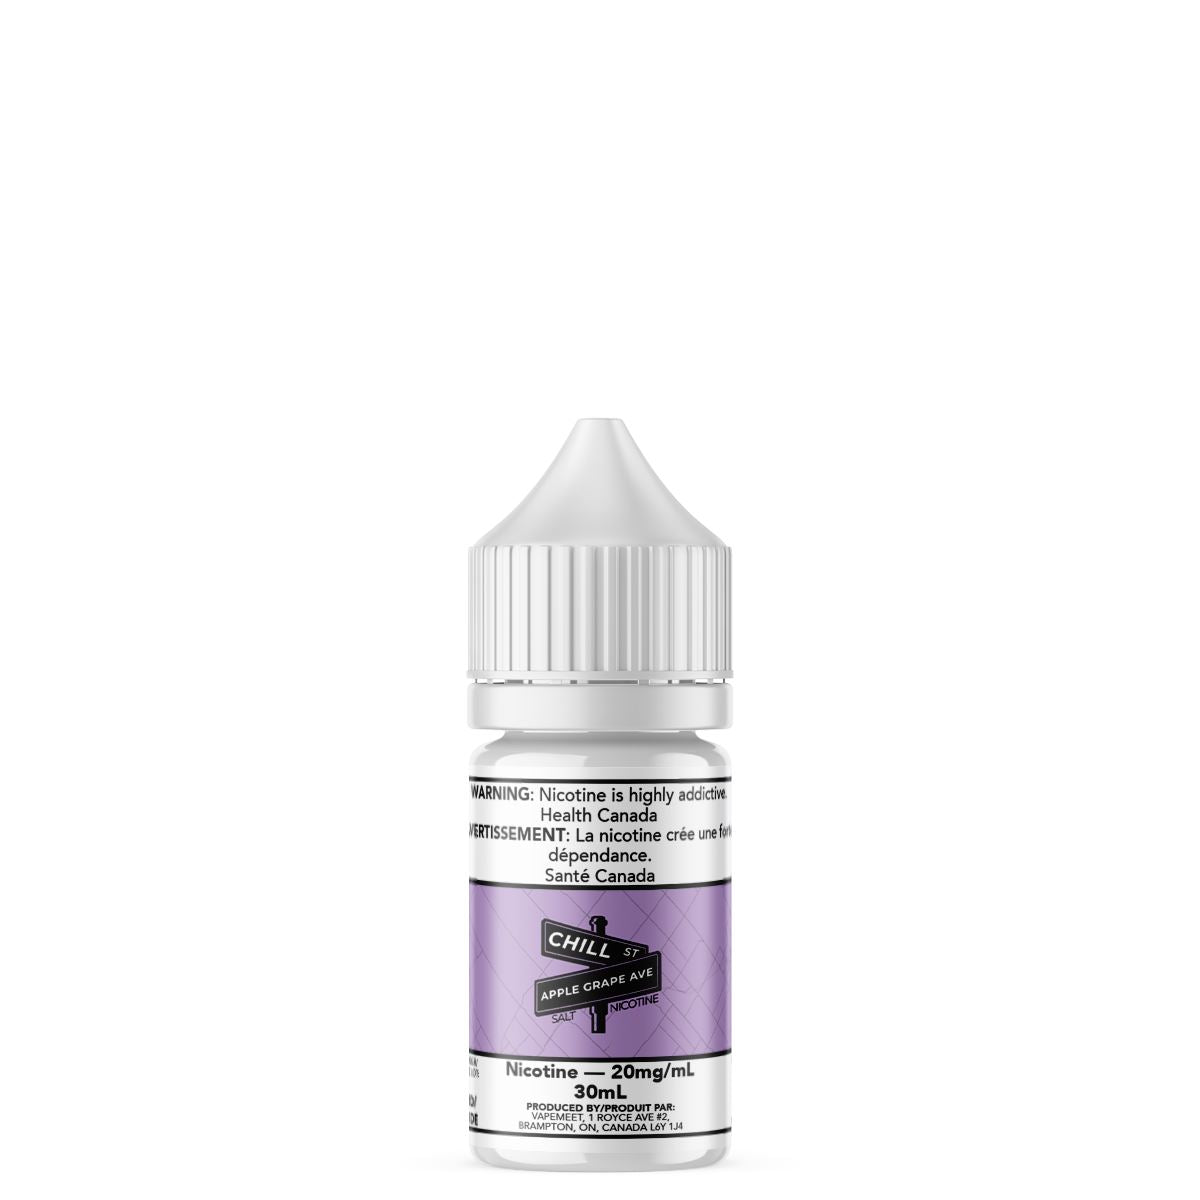 Chill St. - Apple Grape Avenue E-Liquid Chill St. 30mL 10 mg/mL